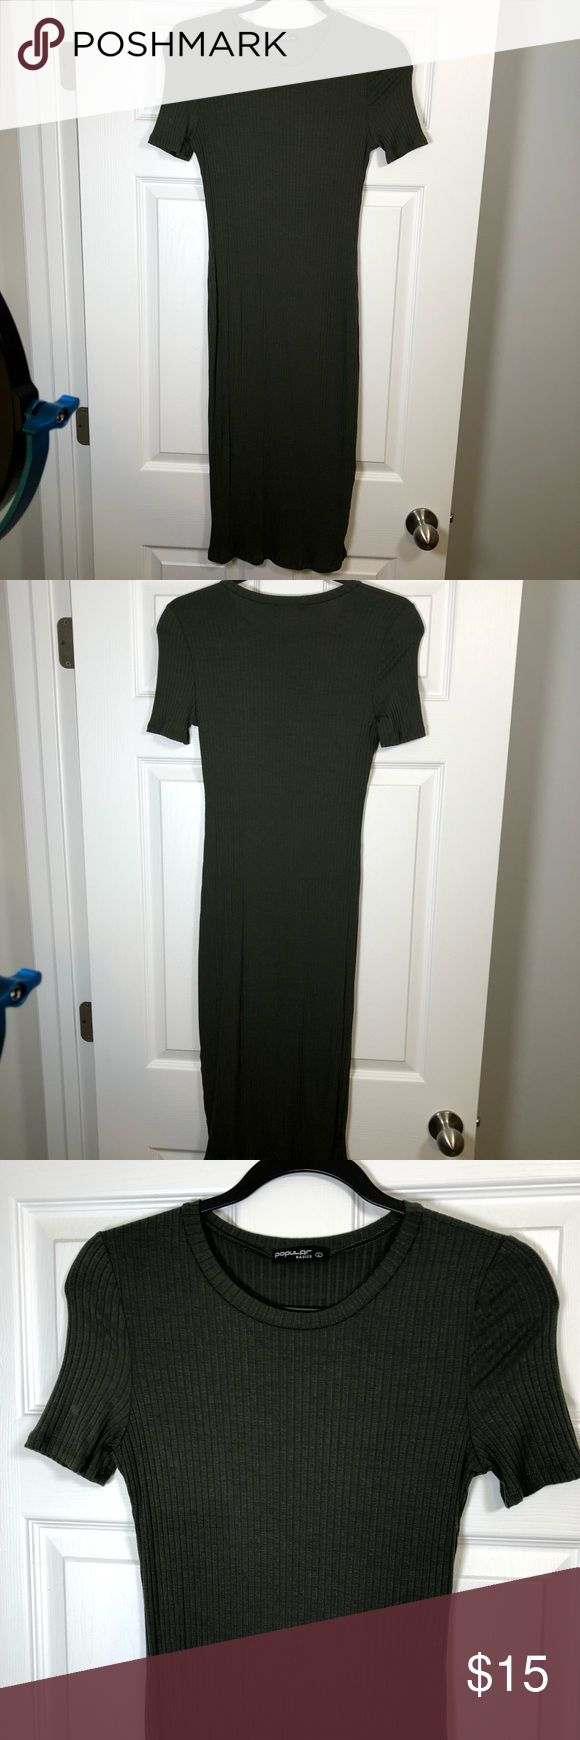 Body contouring maternity dress Super cute forest green dress that hugs all of the cute curves of a pregnant body! Comfortable, easy to wear and style. Labeled as a large, fits as a small. Hits below the knees. New dress with no tags. Dresses Midi